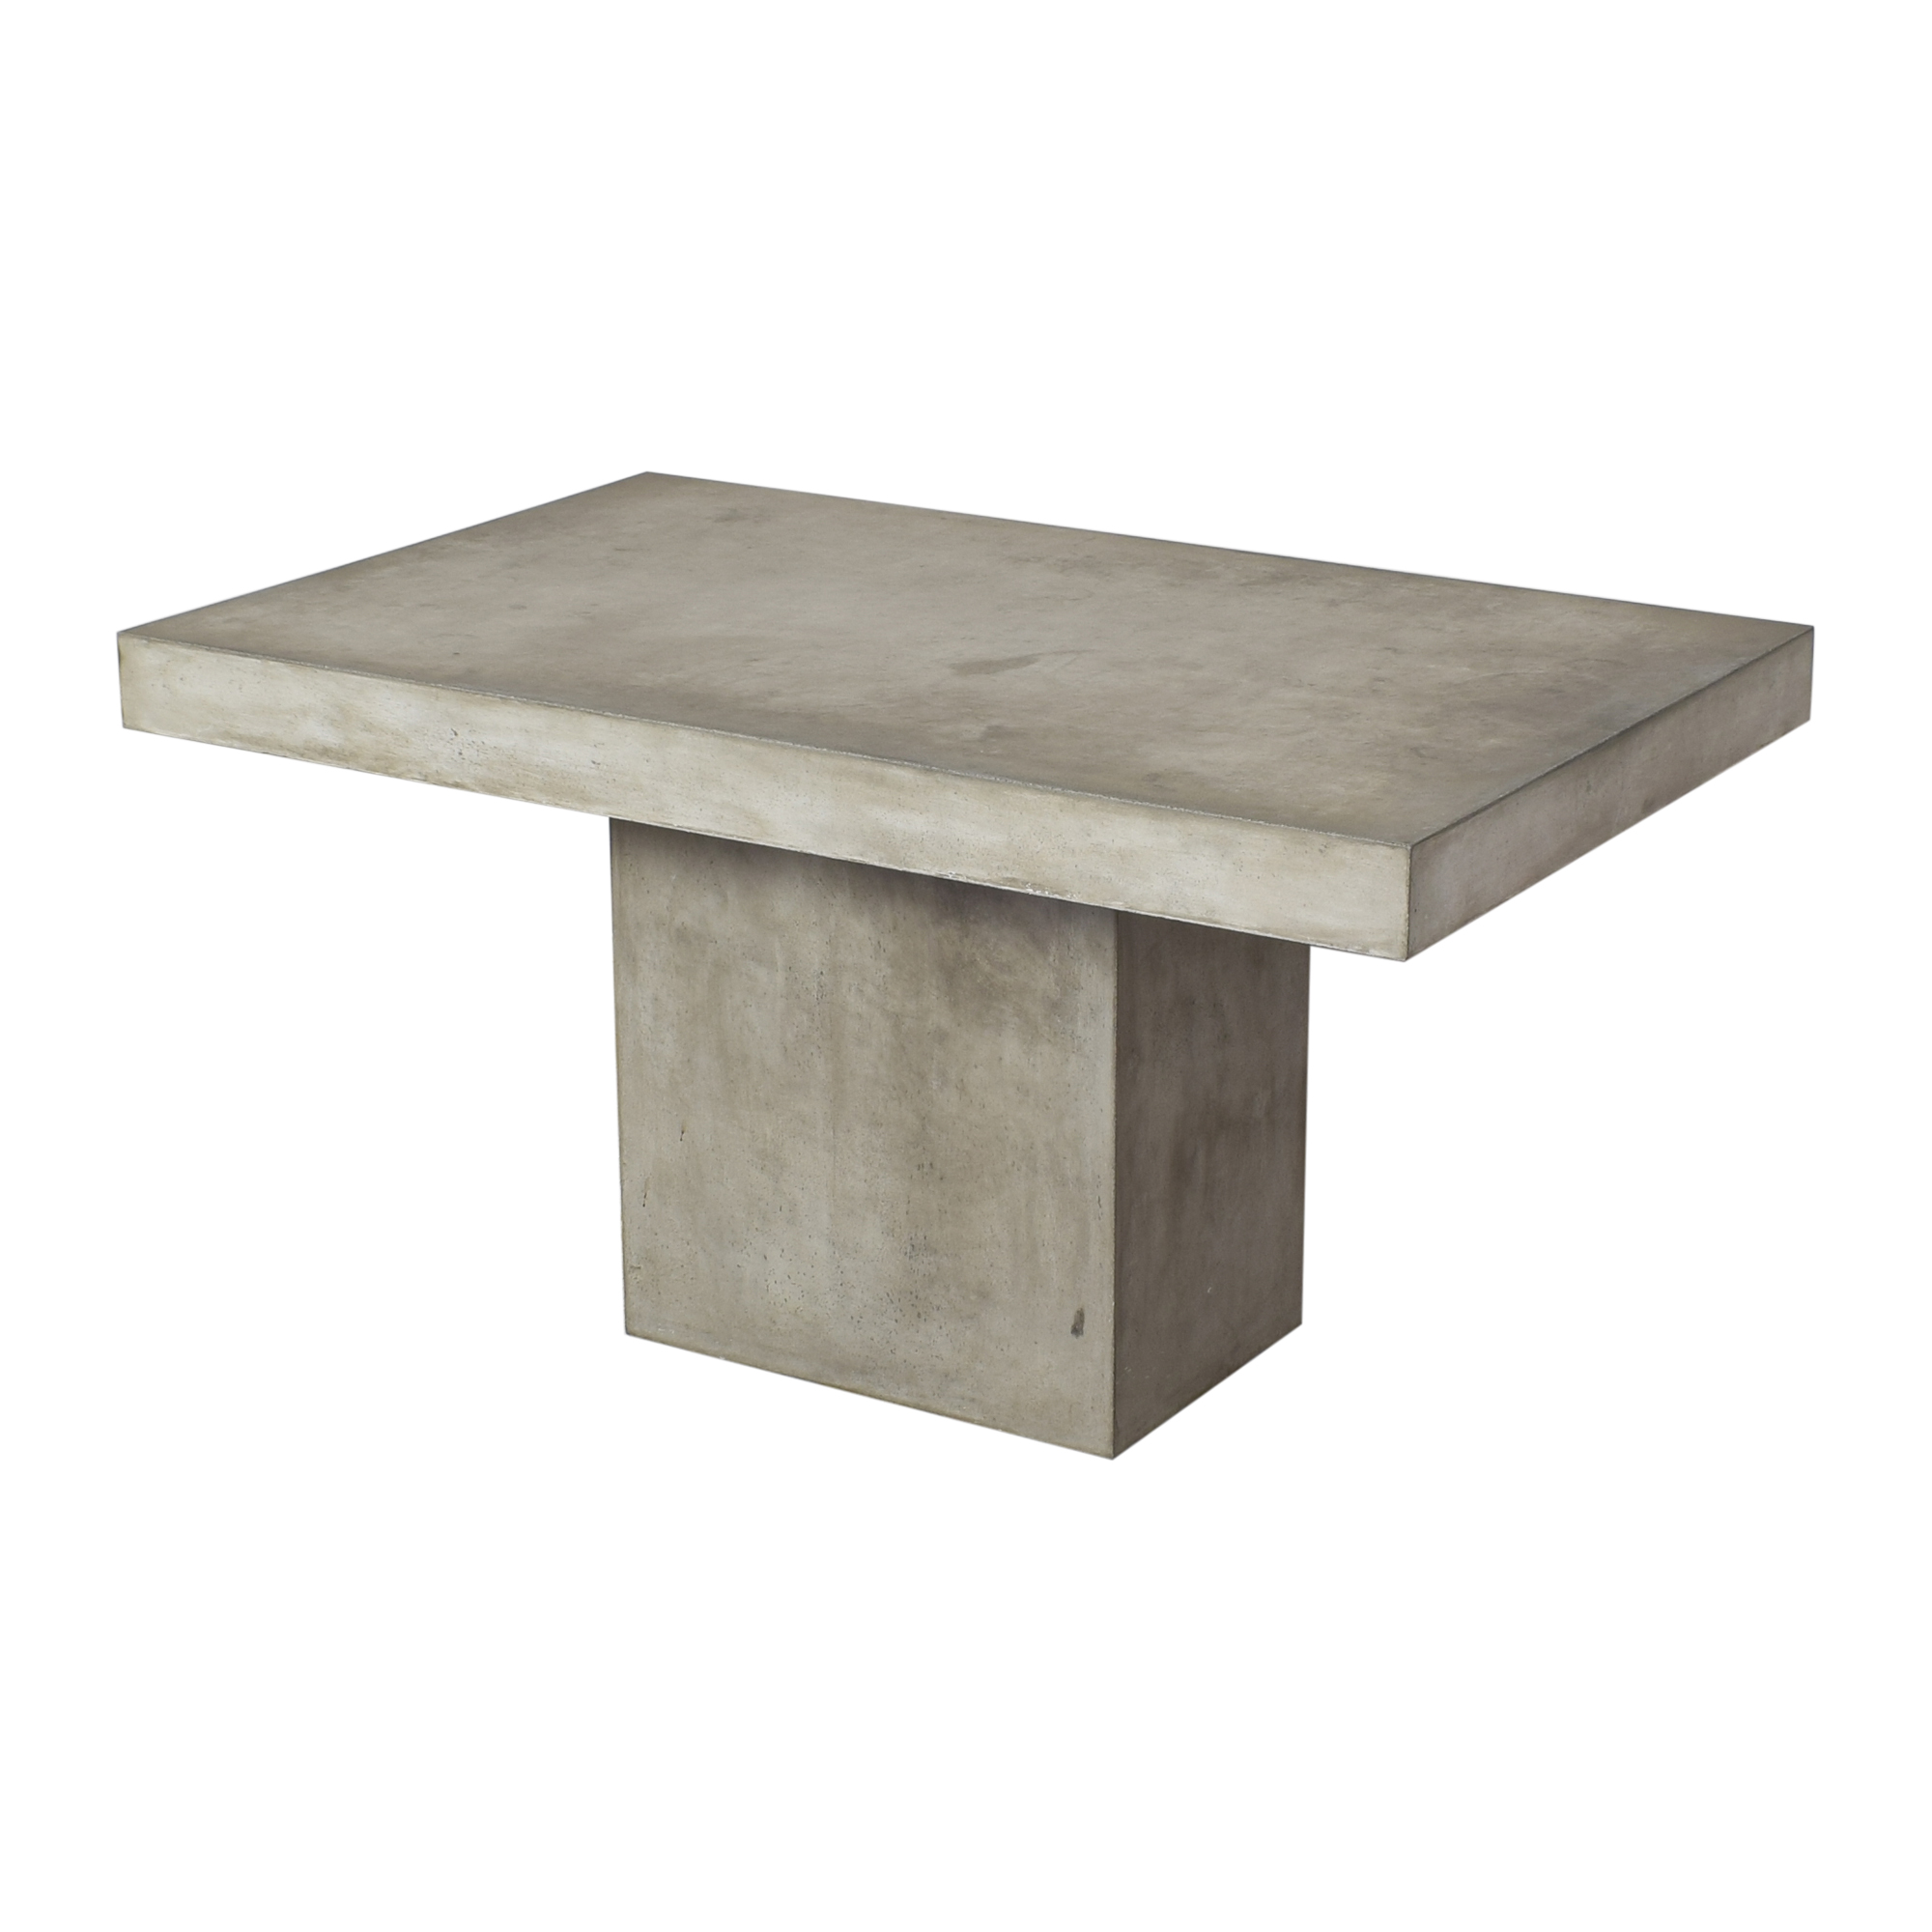 CB2 CB2 Fuze Dining Table on sale